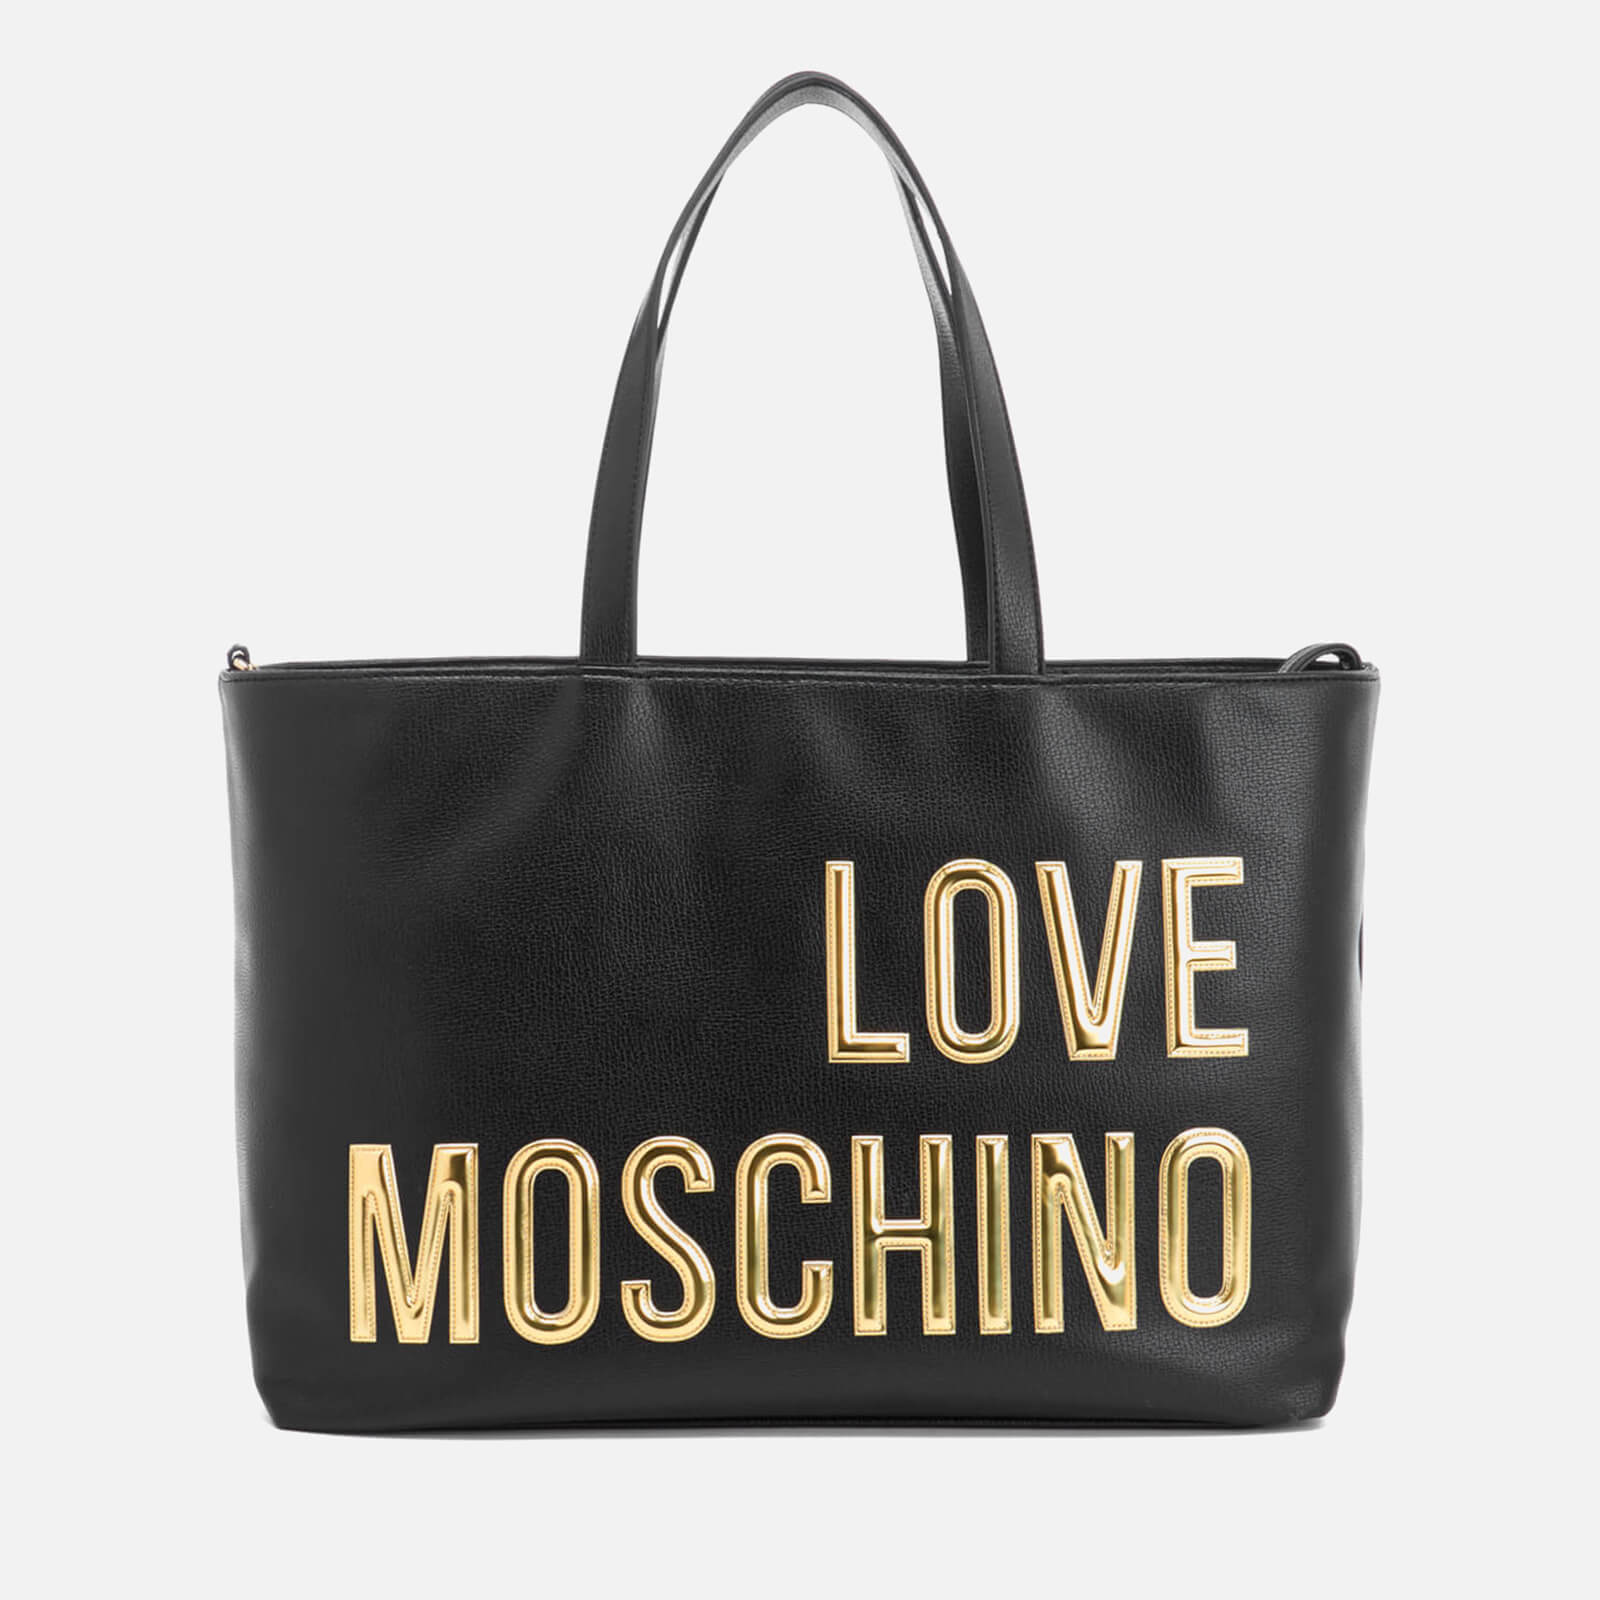 Love Moschino Women s Logo Tote Bag - Black - Free UK Delivery over £50 b6cb126ac97